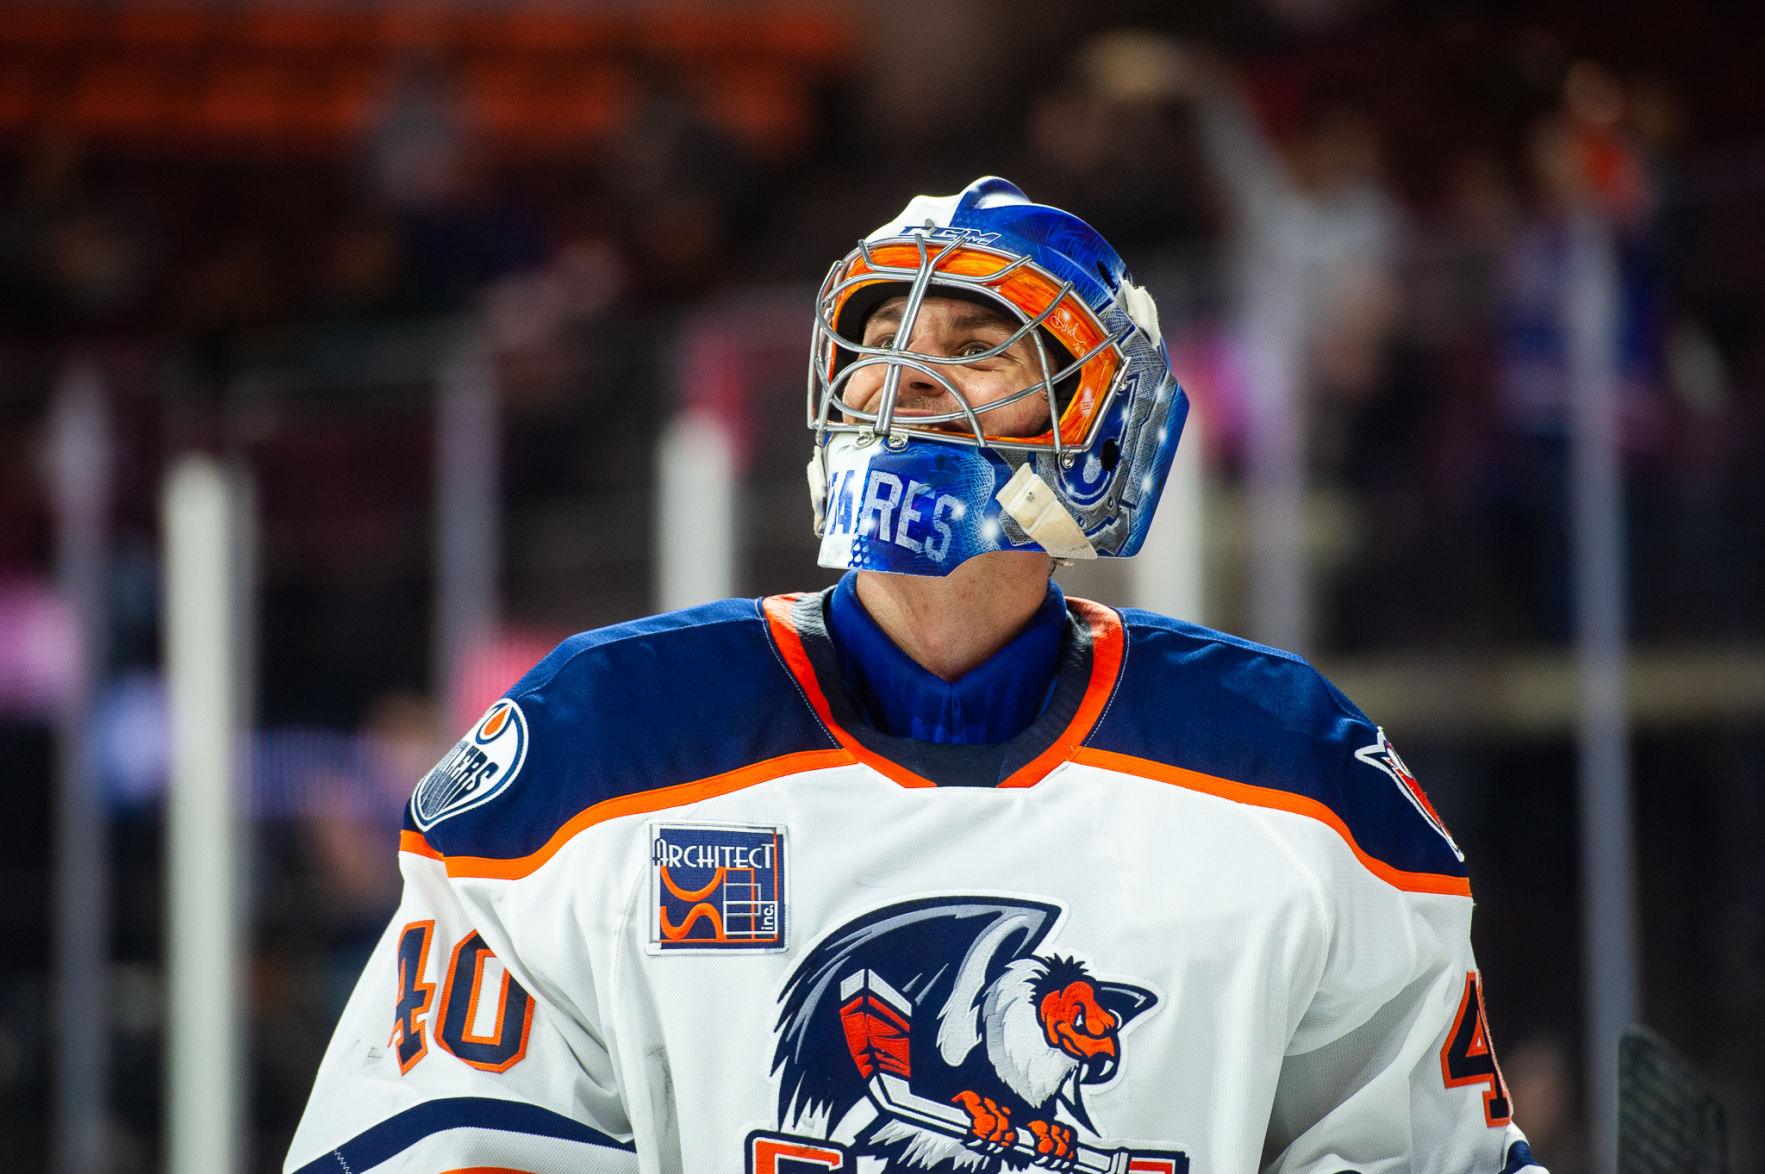 ECHL: Rookie Starrett Has Emerged As Condors Top Goaltender